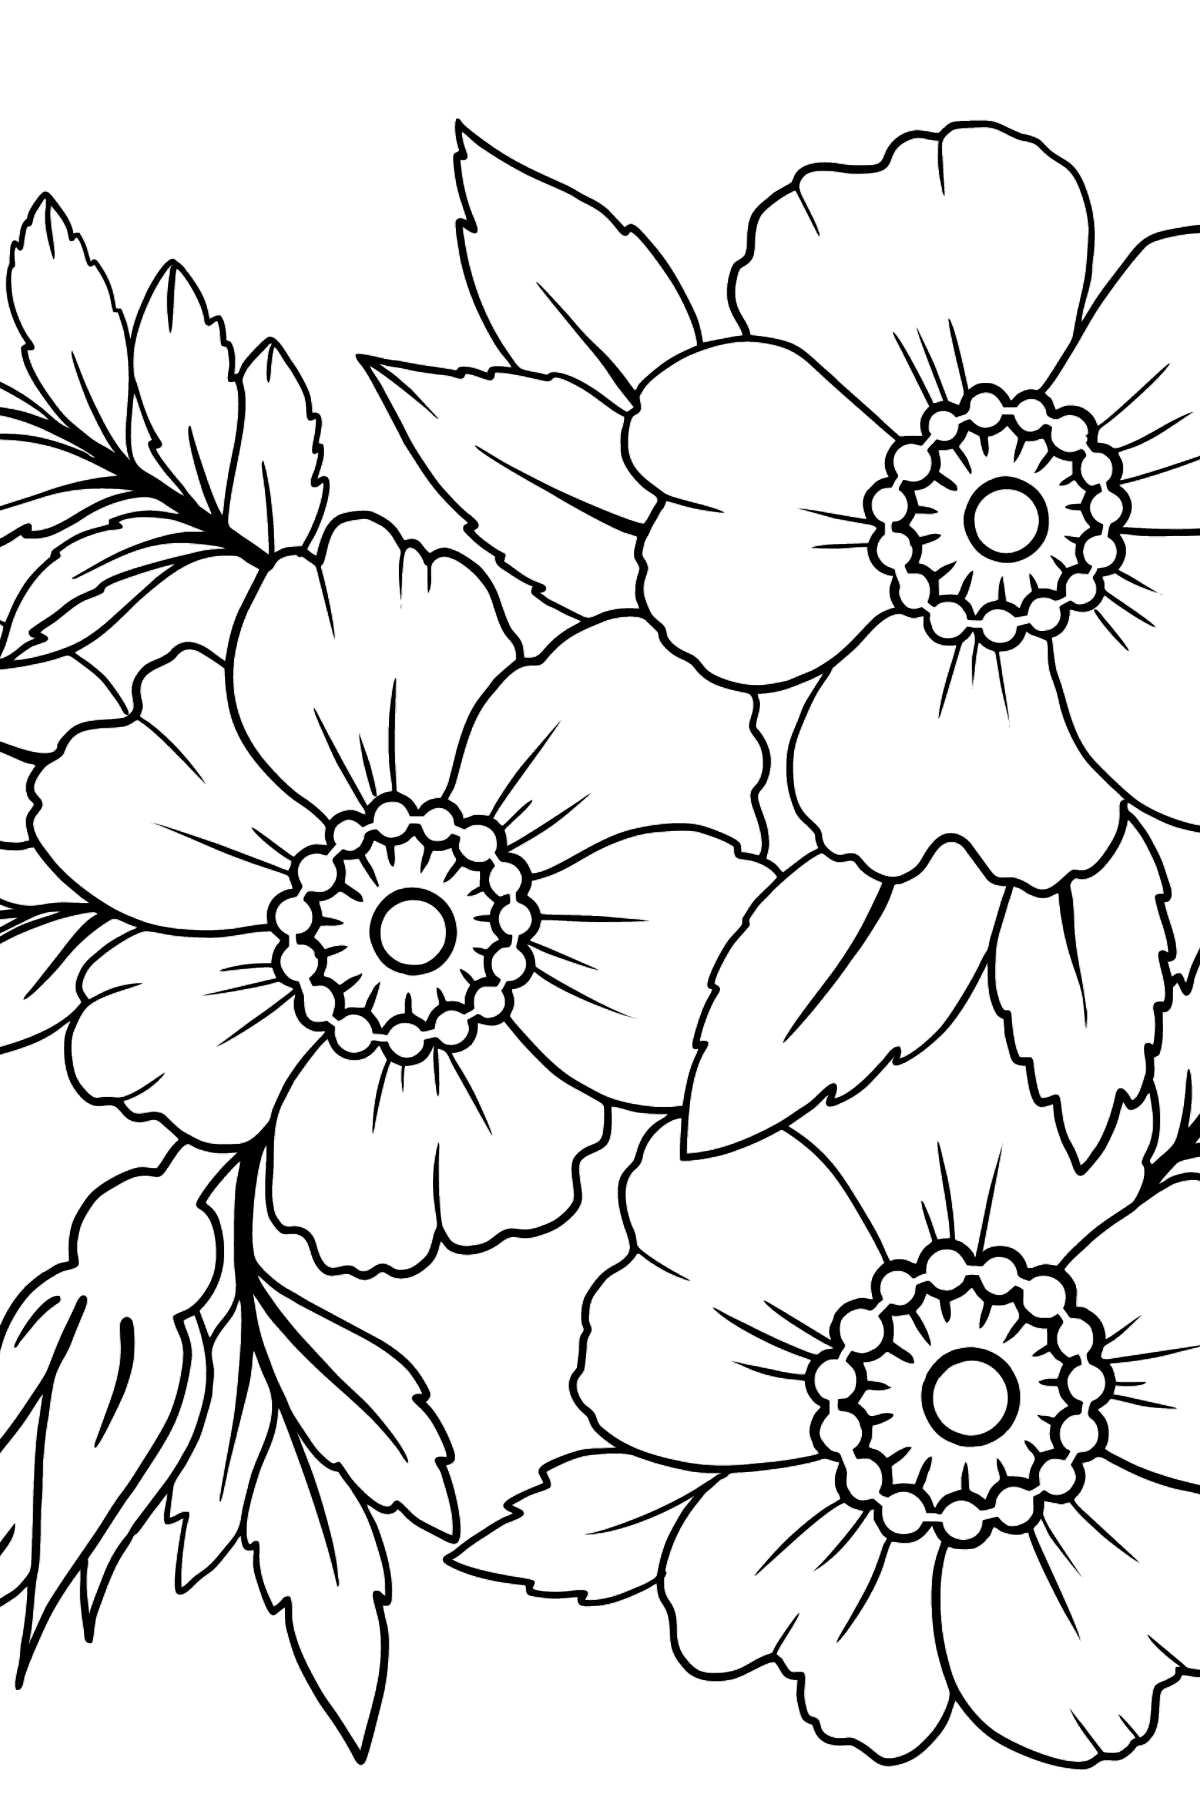 Flower Coloring Page - Japanese Velvet Anemone - Coloring Pages for Kids